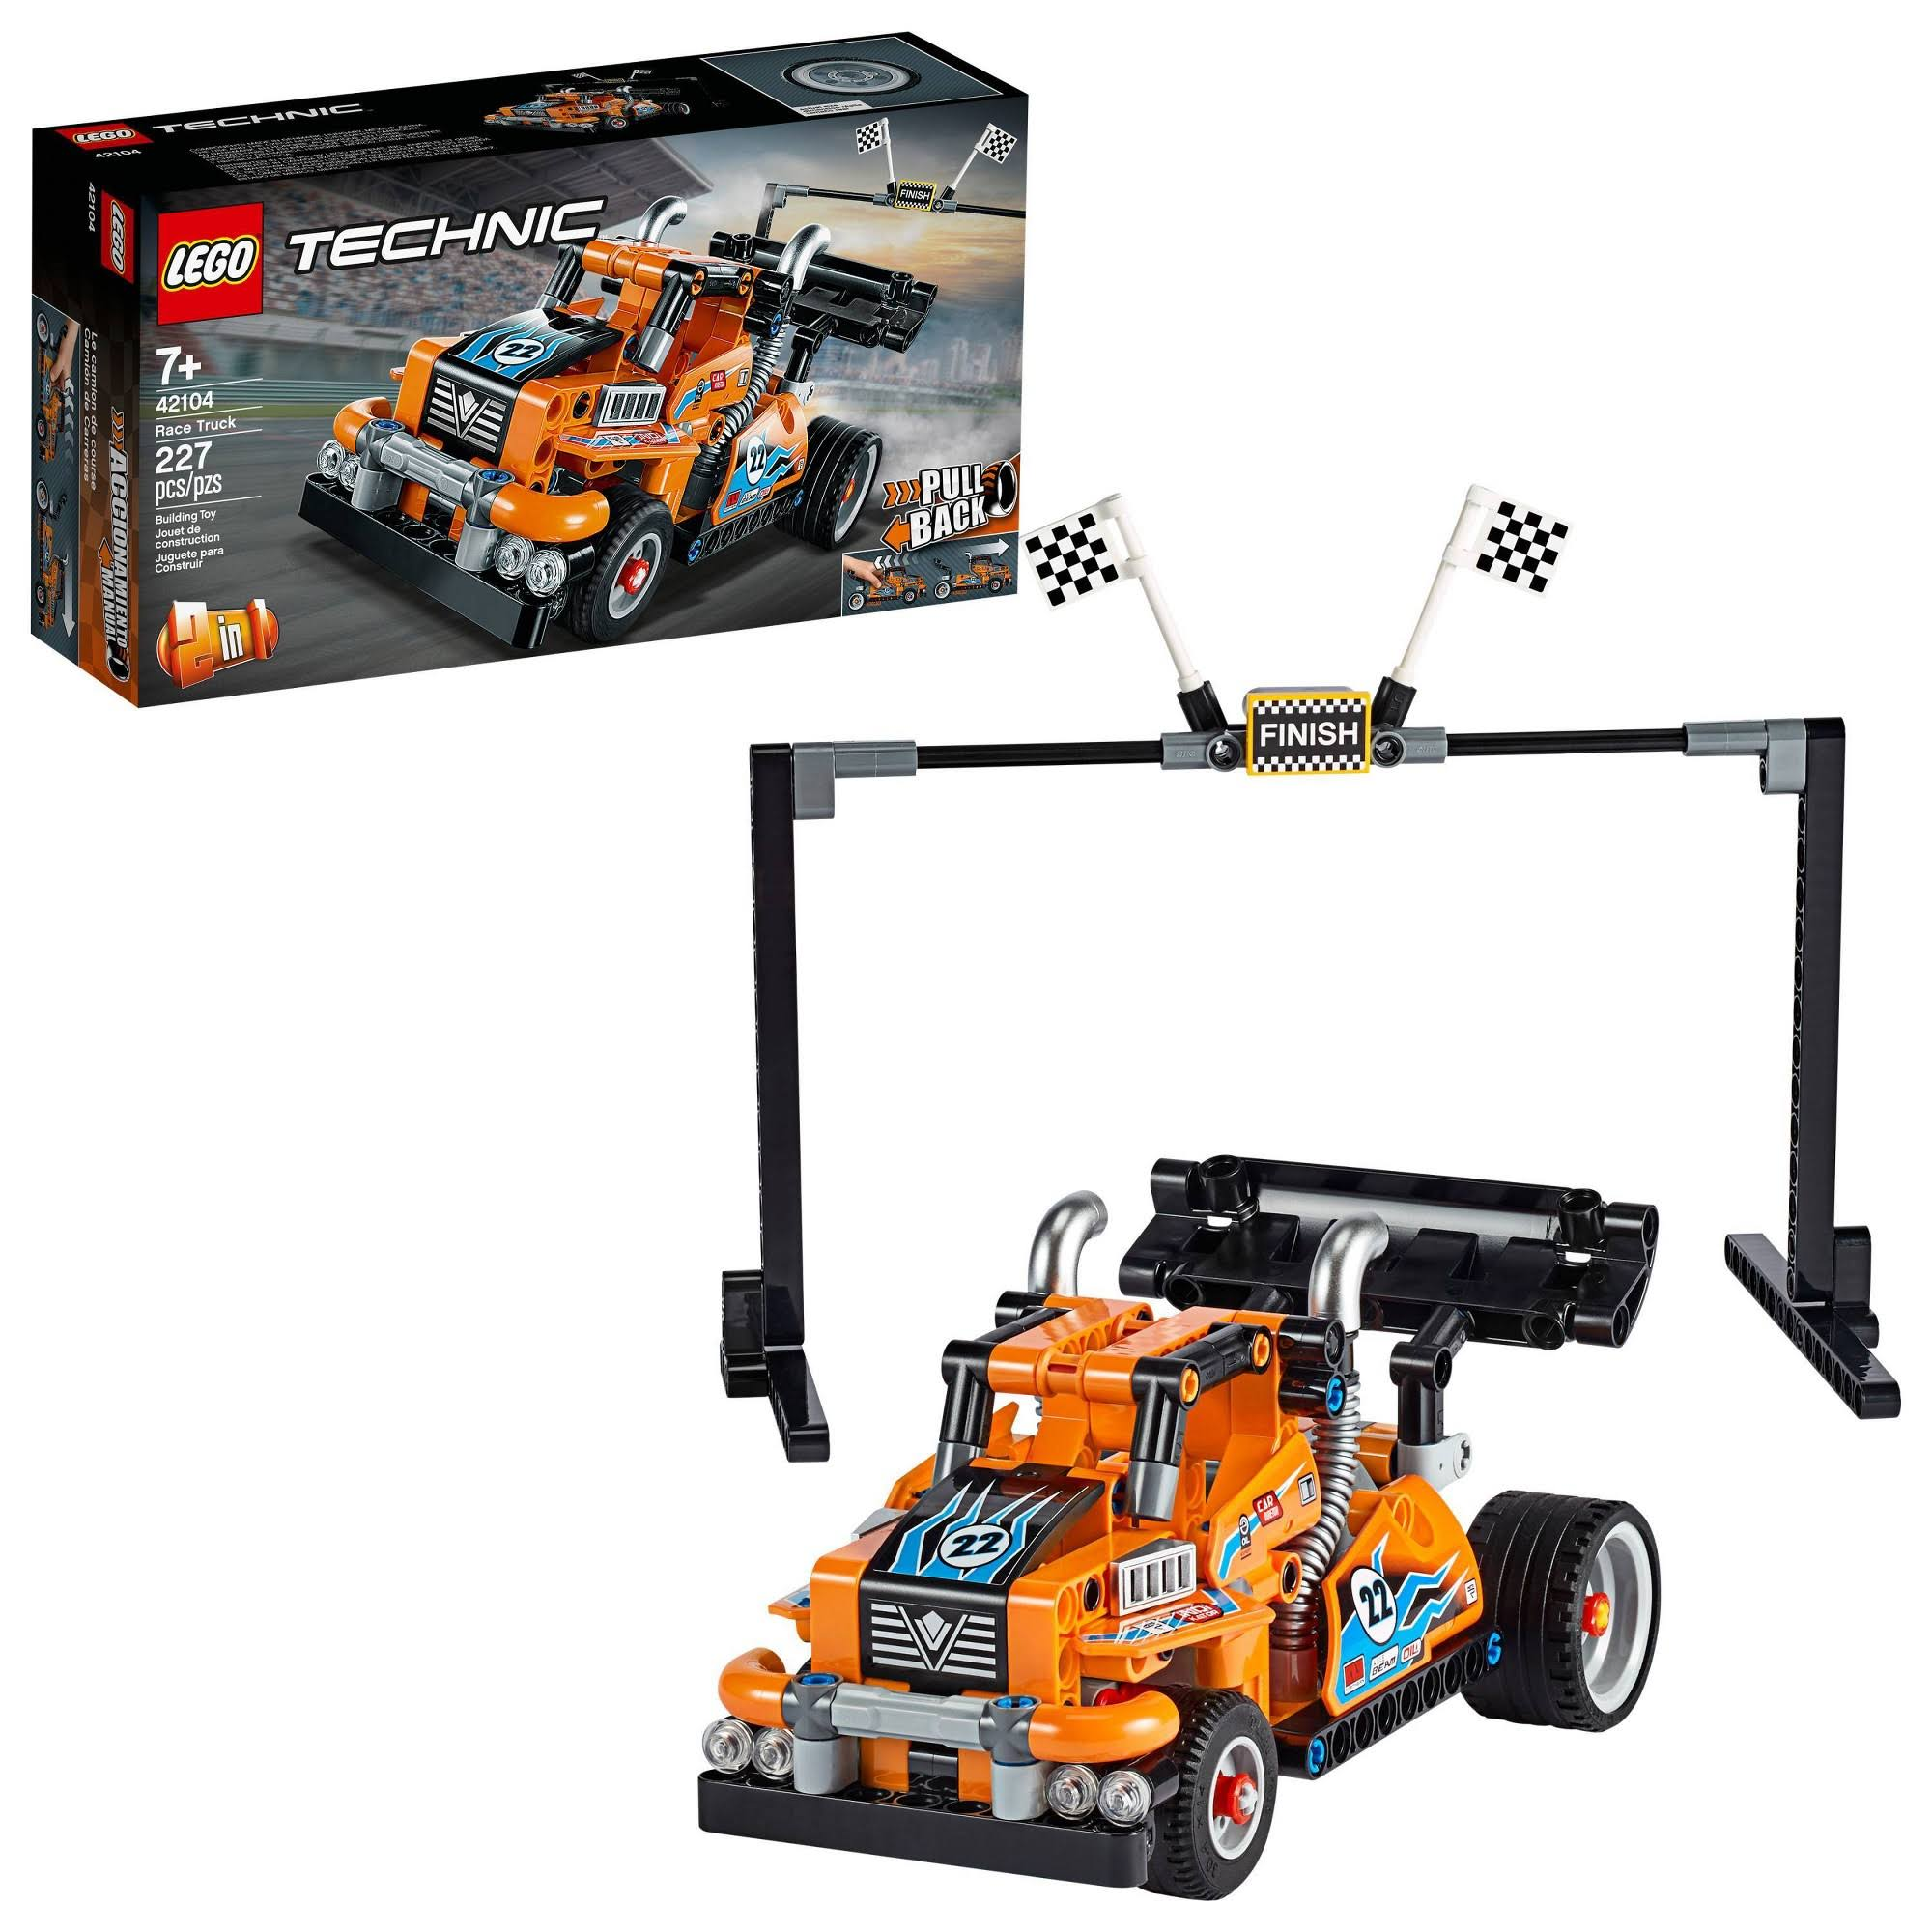 Lego Technic Race Truck 42104 Building Kit